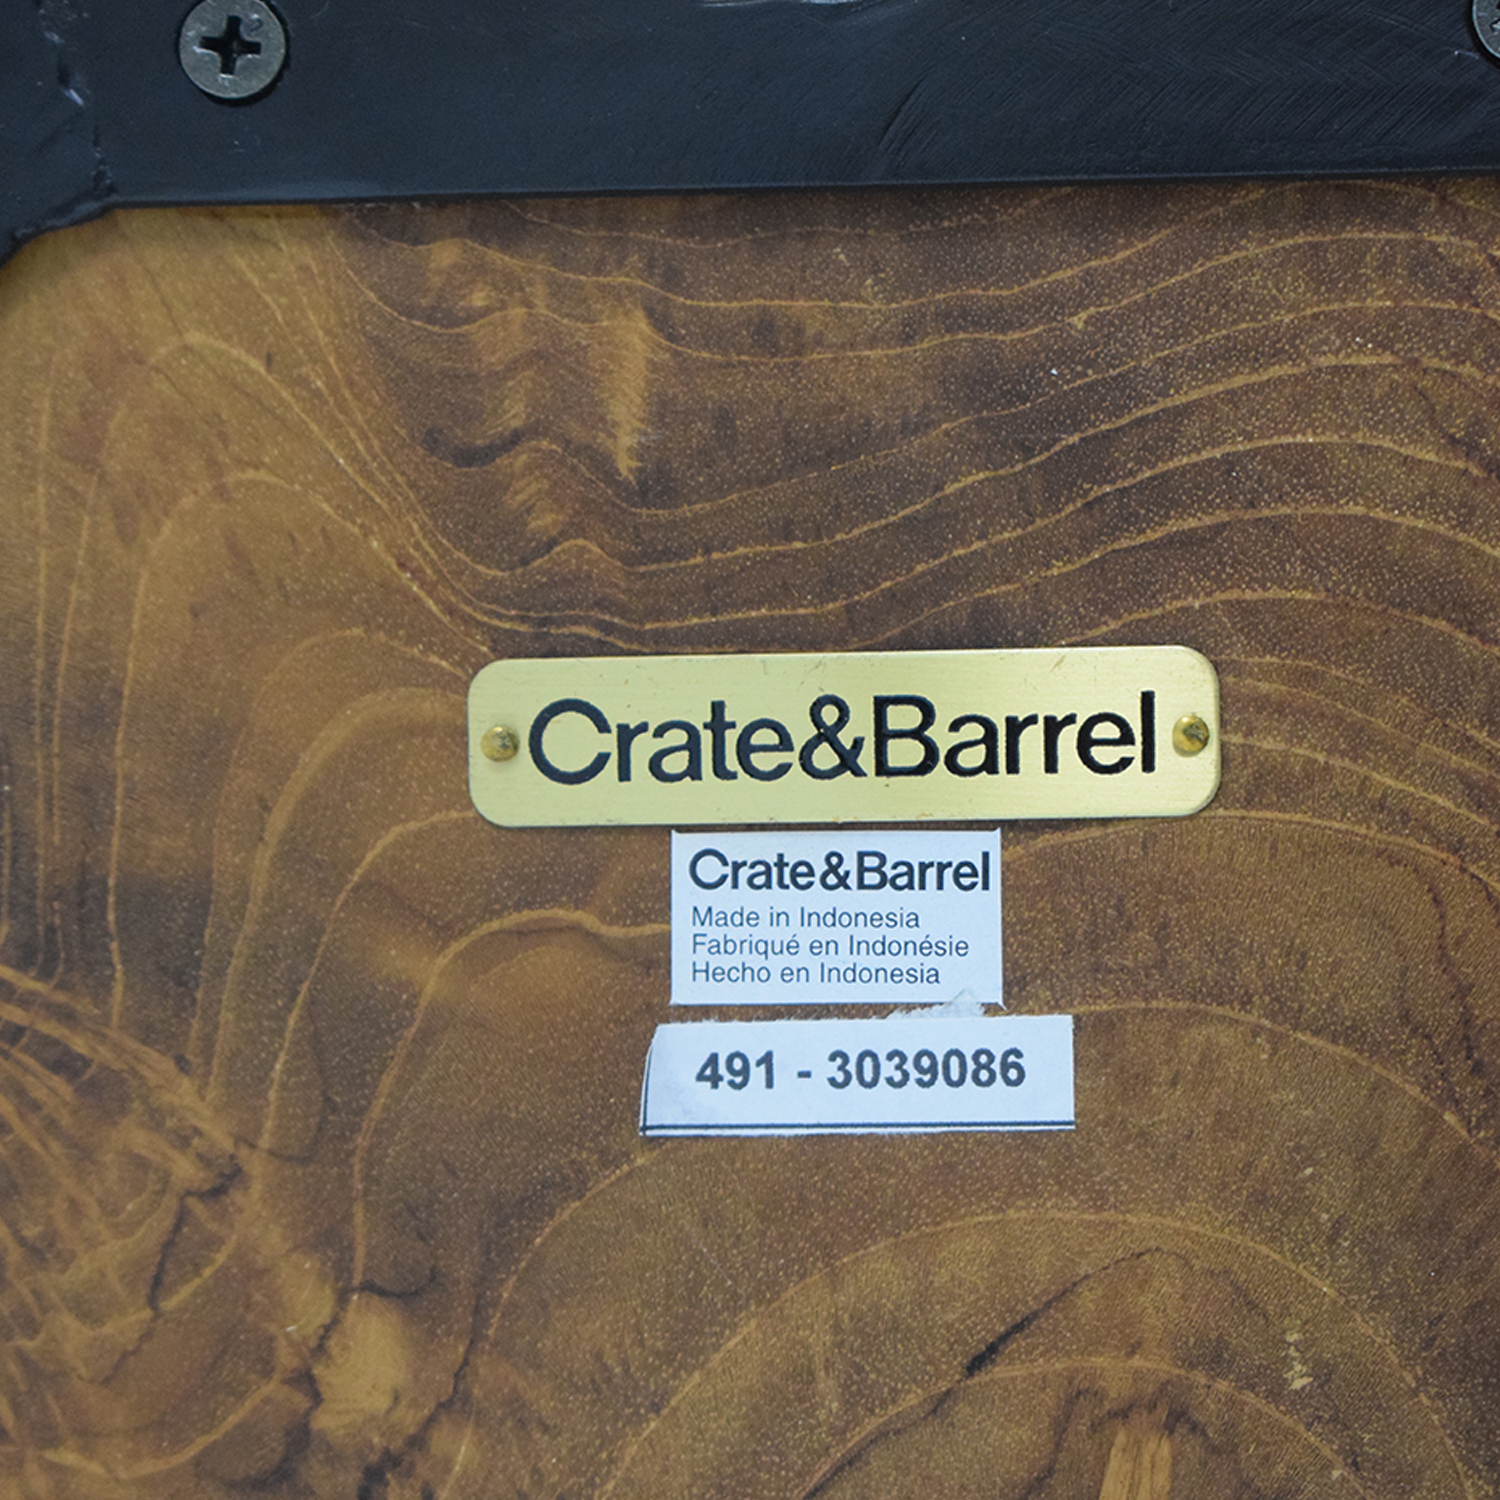 Crate & Barrel Crate & Barrel Distressed Wood Stool dimensions